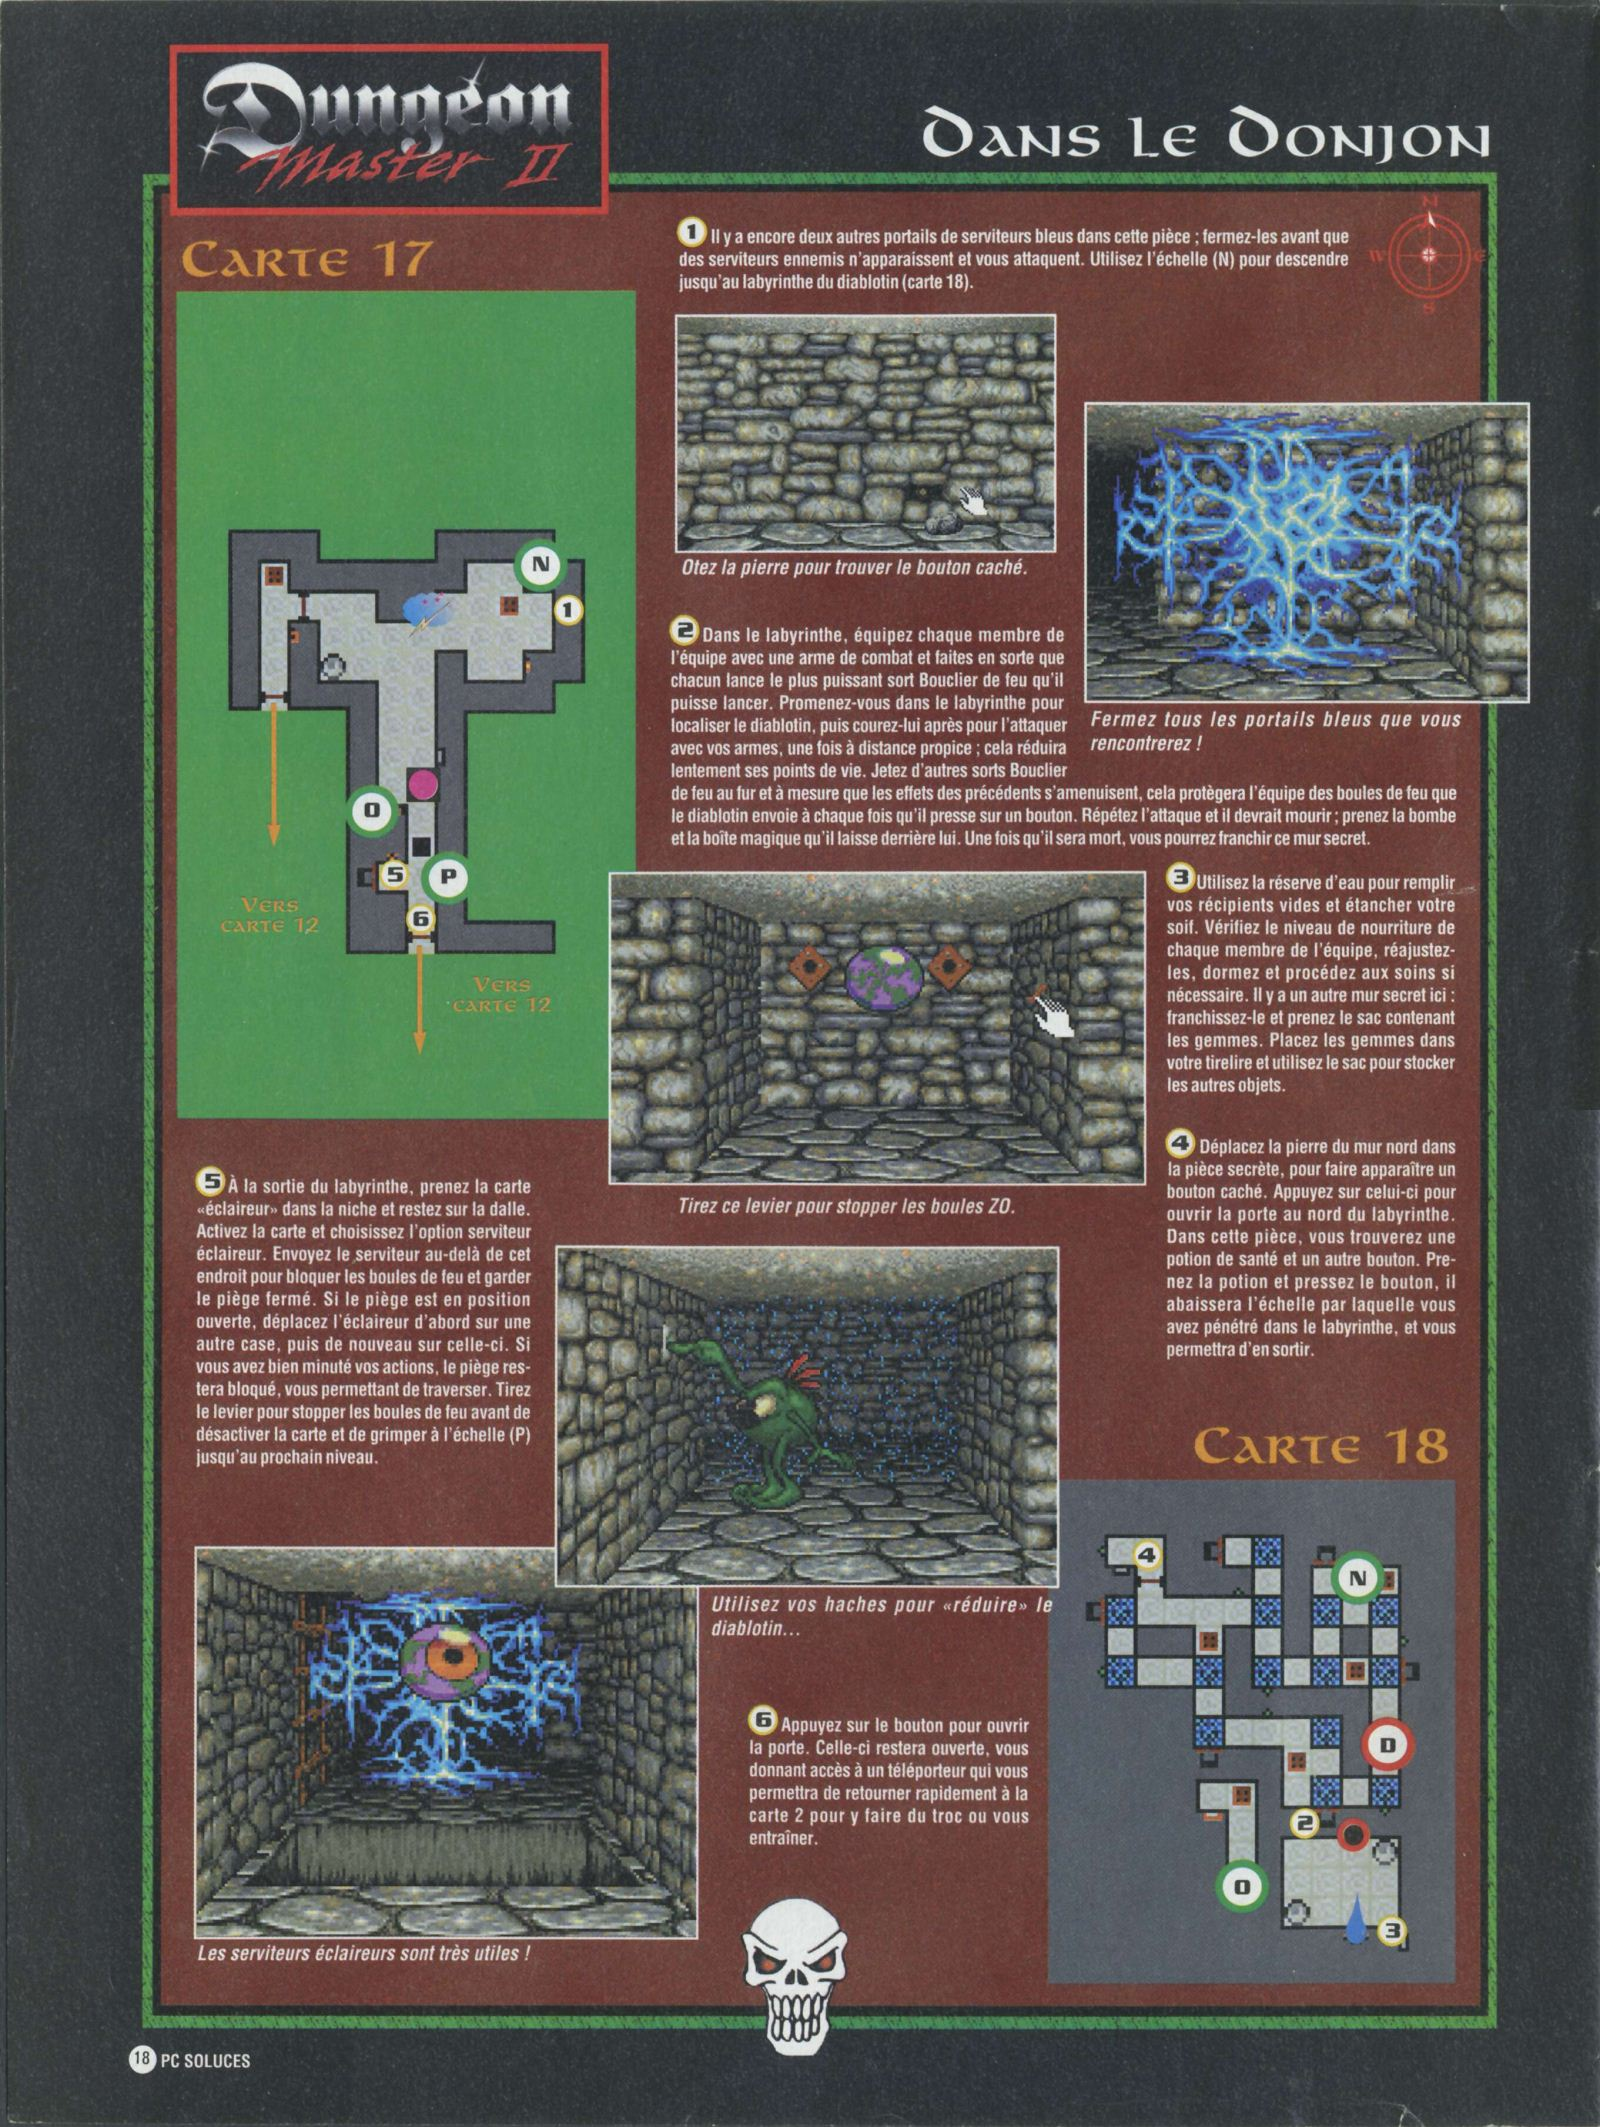 Dungeon Master II solution published in French magazine &amp;#039;PC Soluces&amp;#039;, Issue#1, February-March 1996, Page18